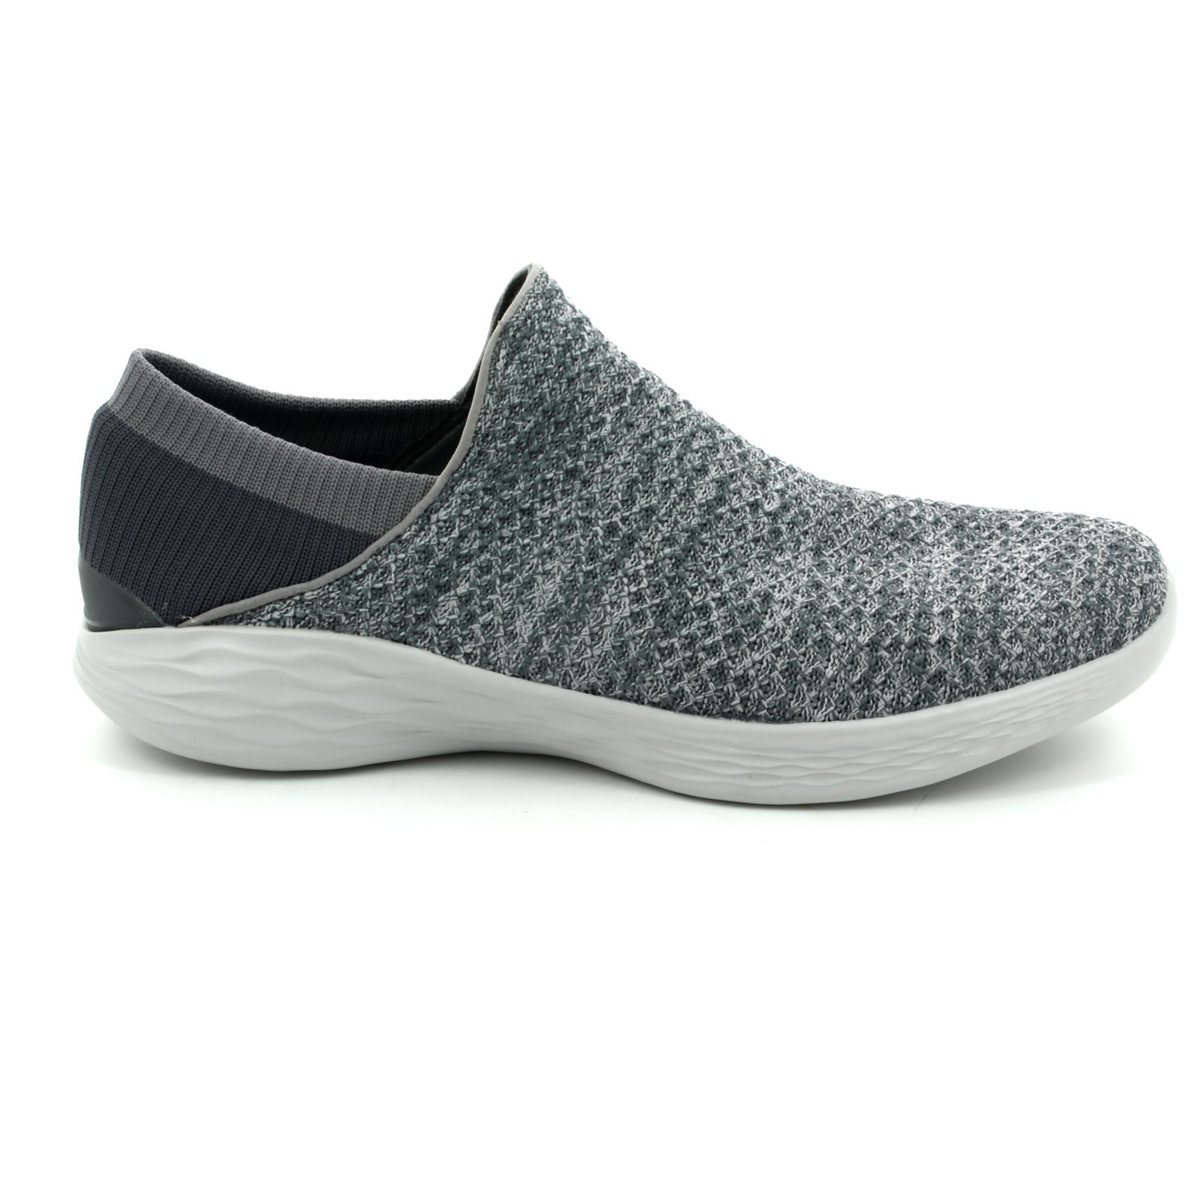 From boots and trainers to flip-flops and slip-ons, Skechers offers a range of comfortable and stylish casual footwear. The collections feature innovative technology mixed with colourful everyday styling, perfect for people on the go.